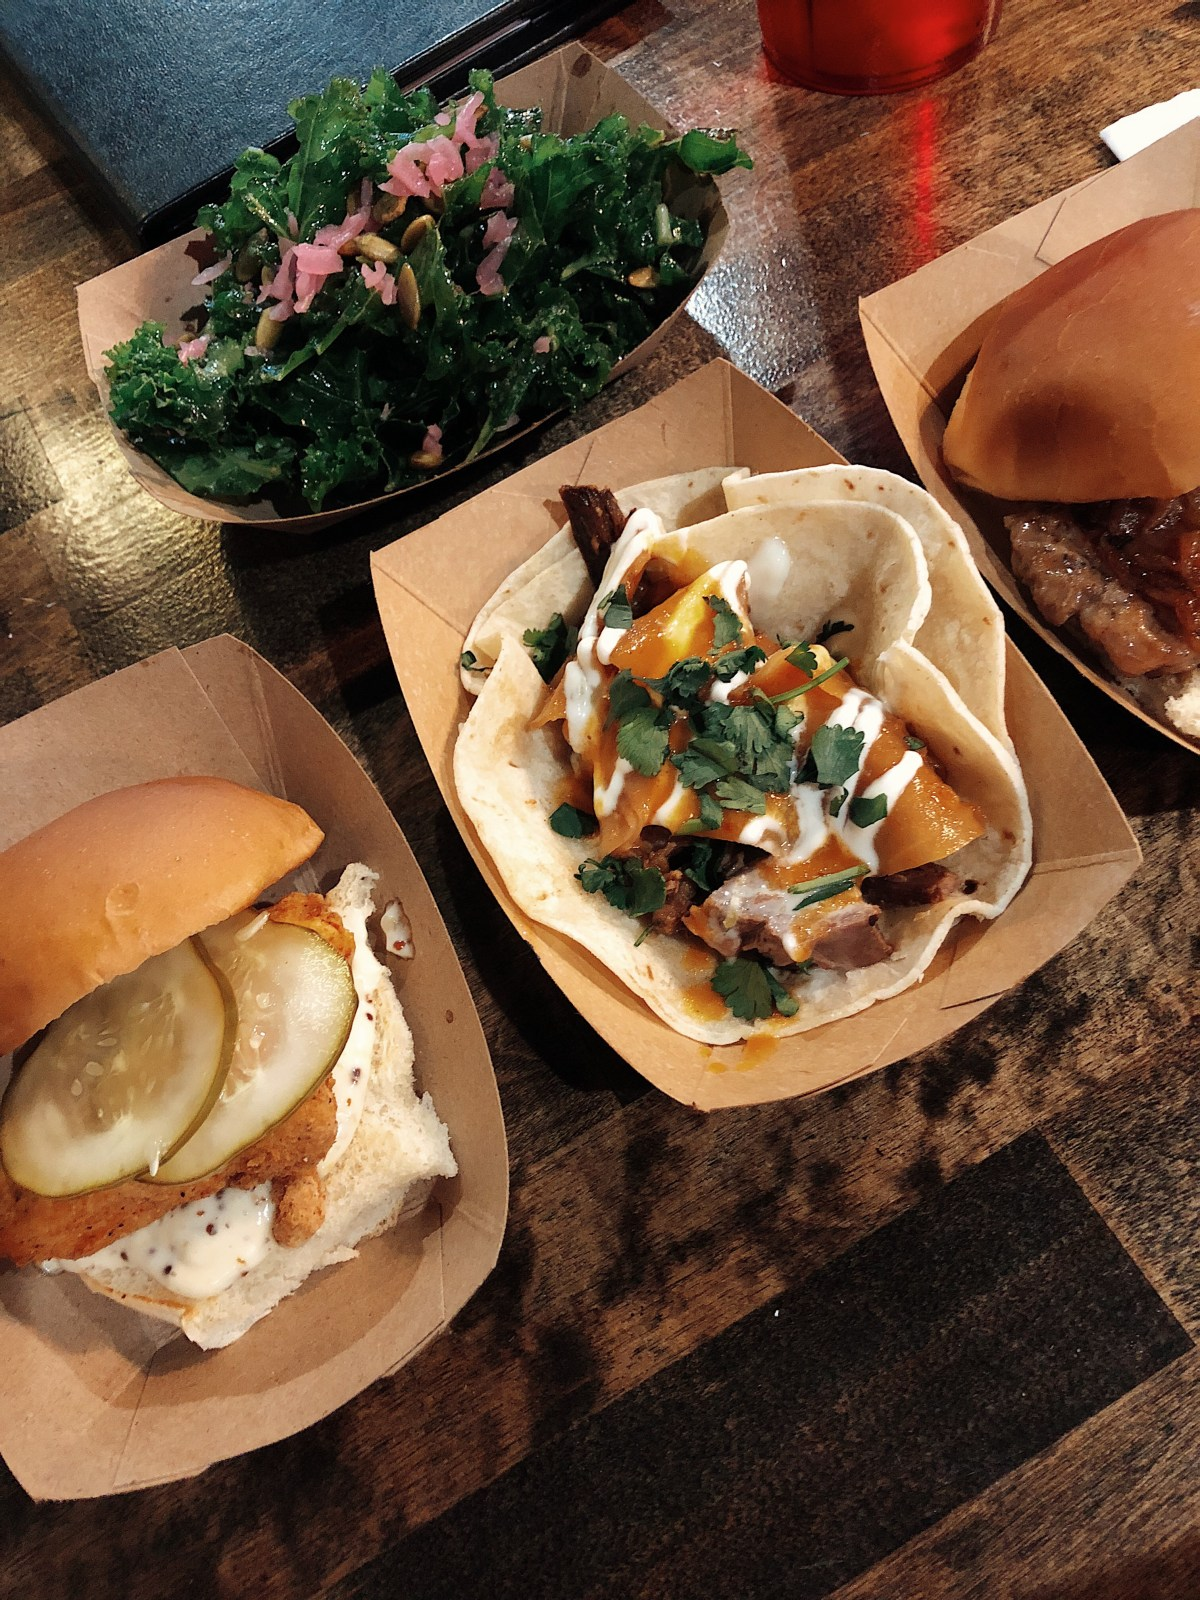 The Kitchen Gent | Oskar's Slider Bar